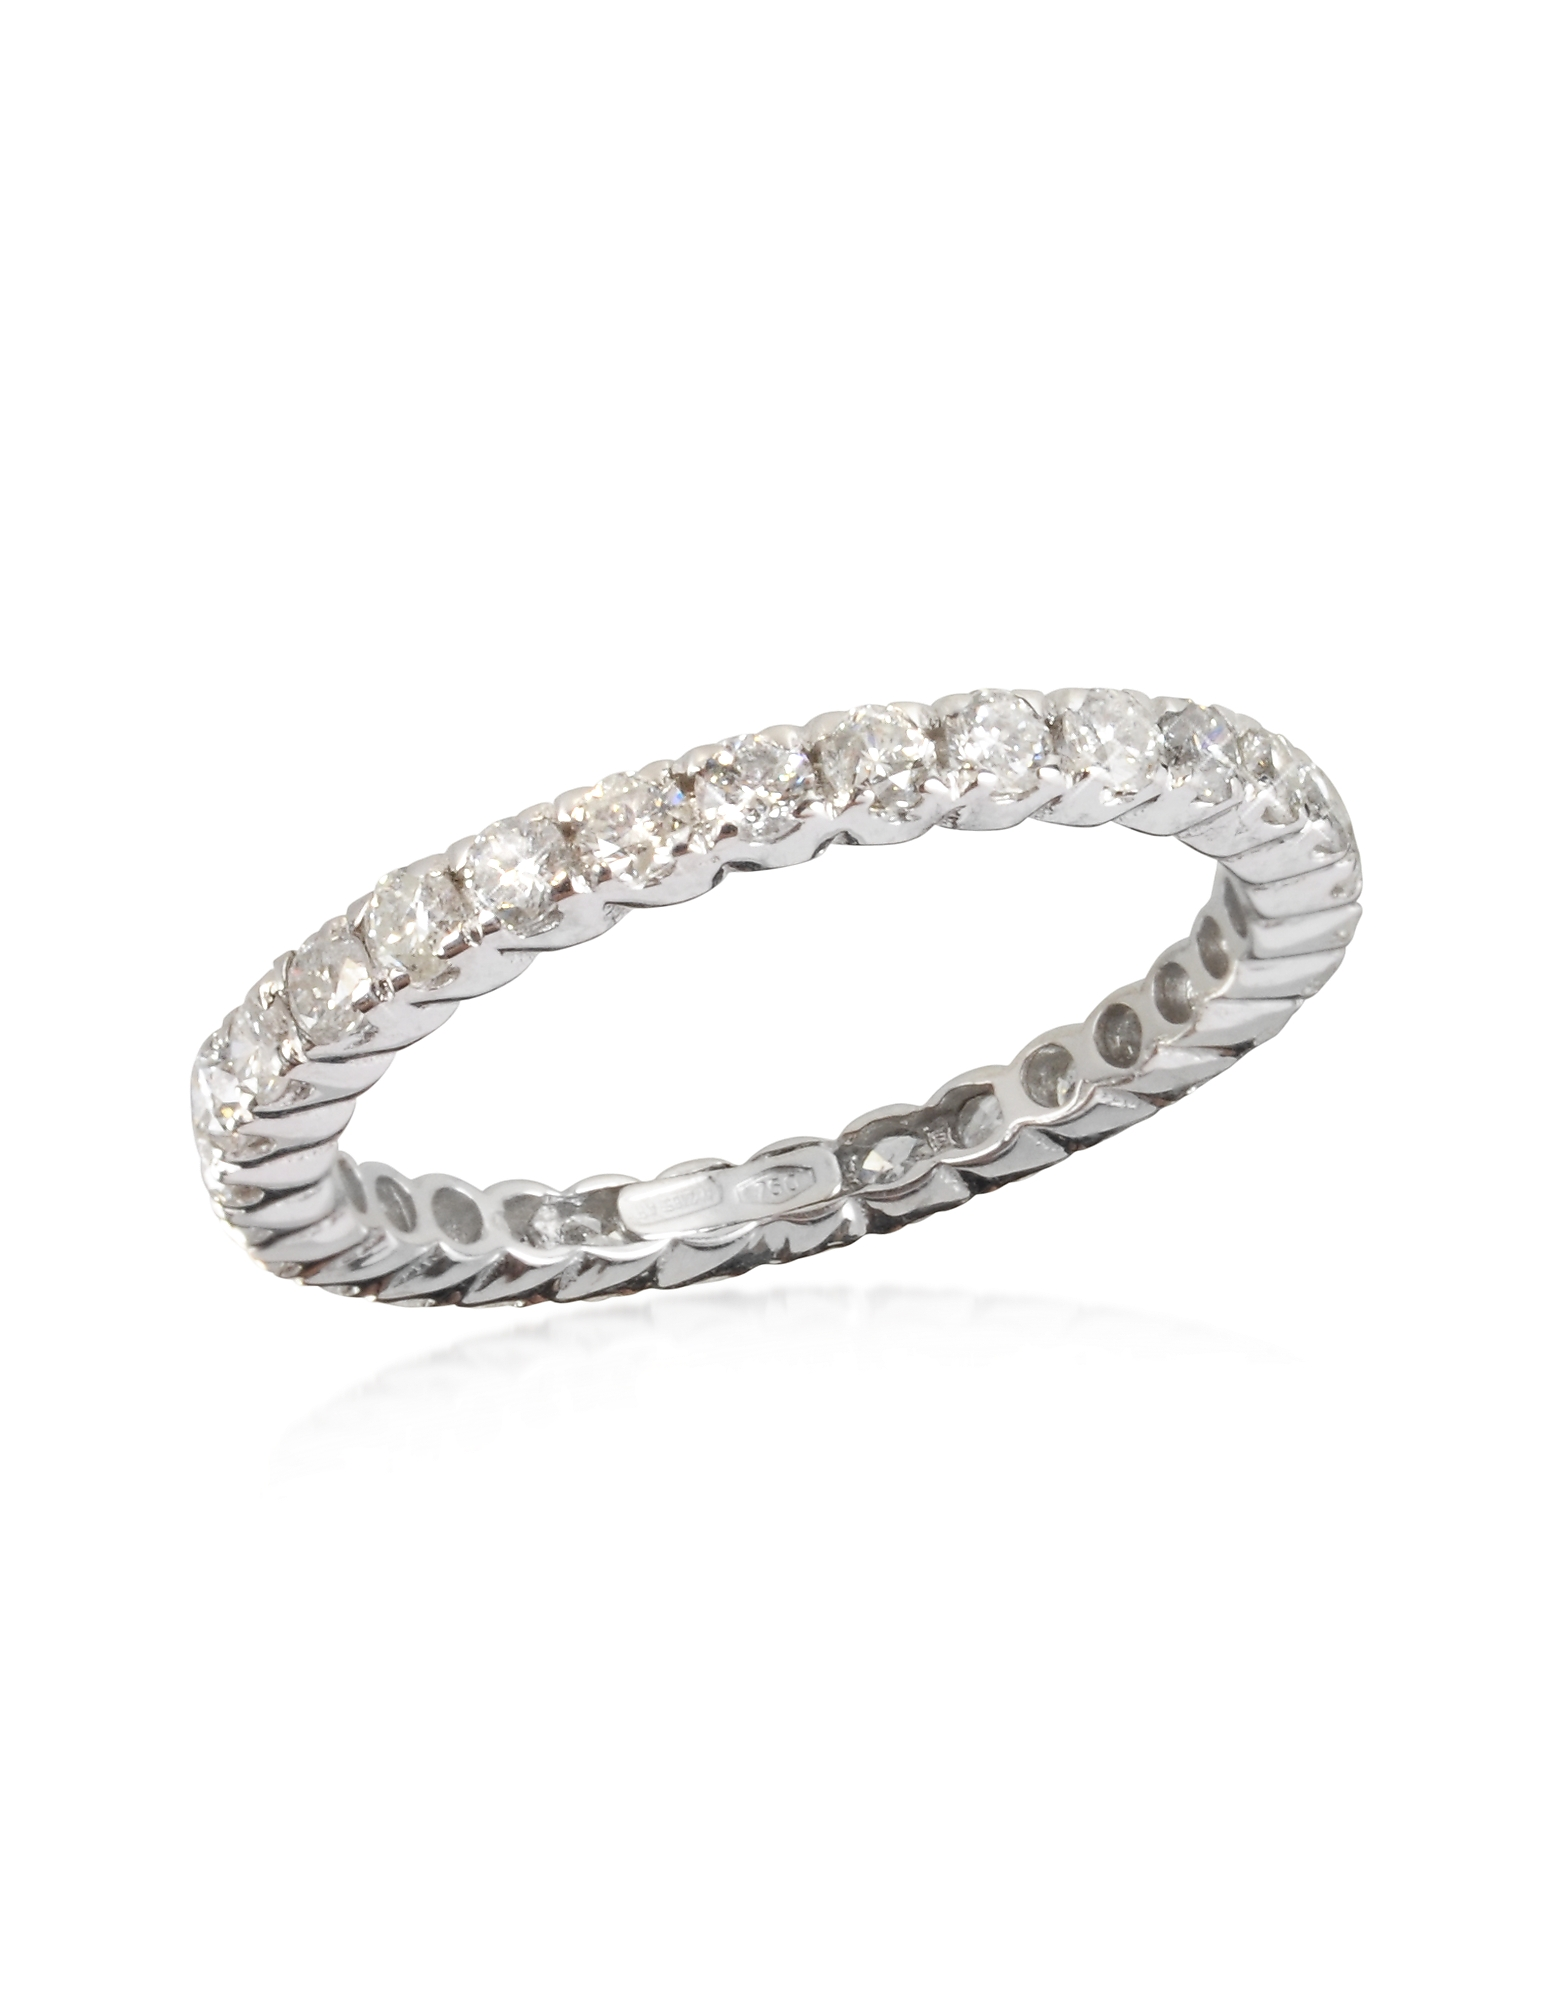 Forzieri Rings, 1.20 ctw Diamond 18K White Gold Eternity Band